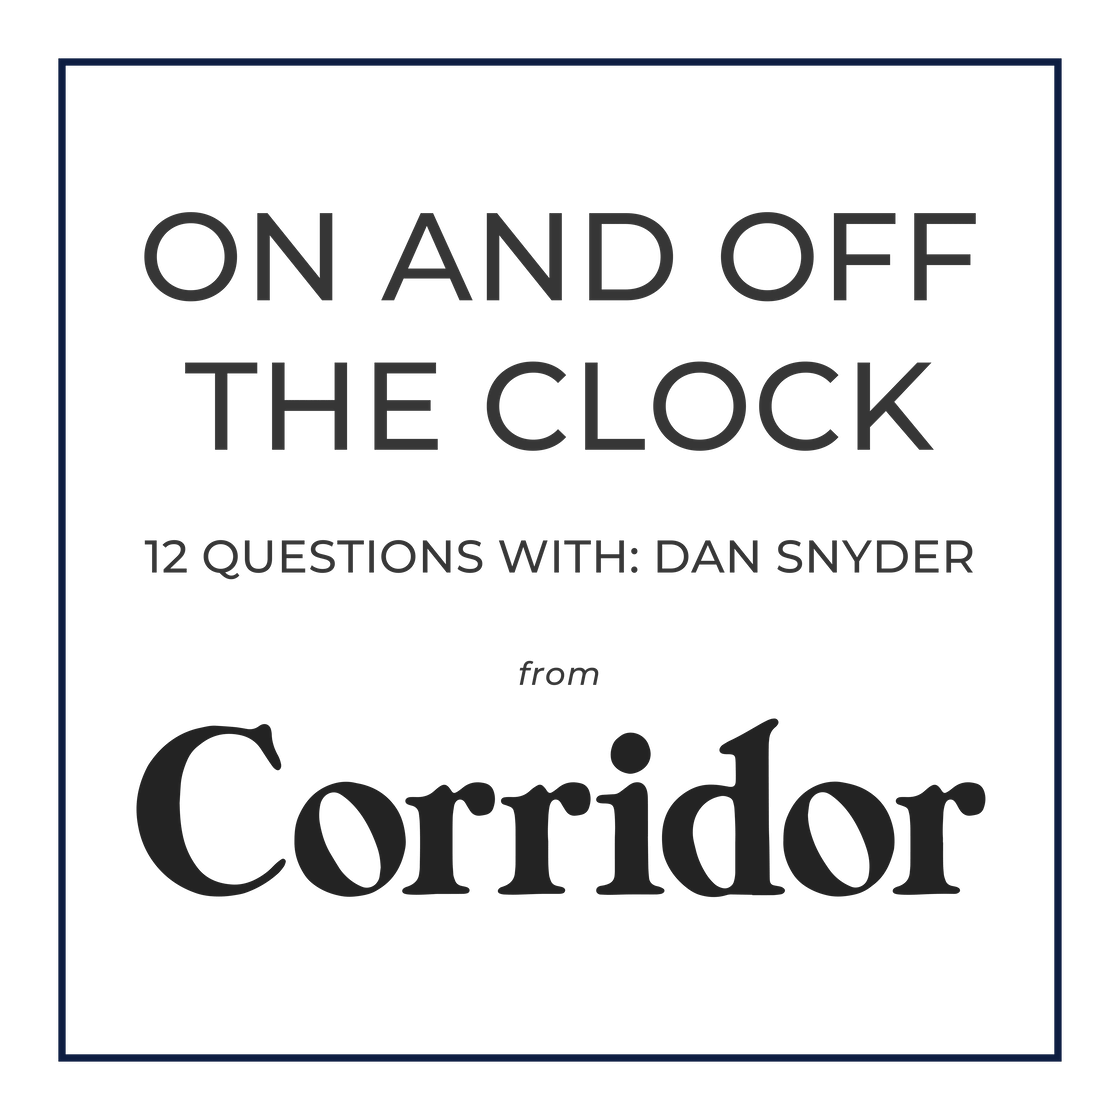 On And Off The Clock: 12 Questions With Dan Snyder from Corridor